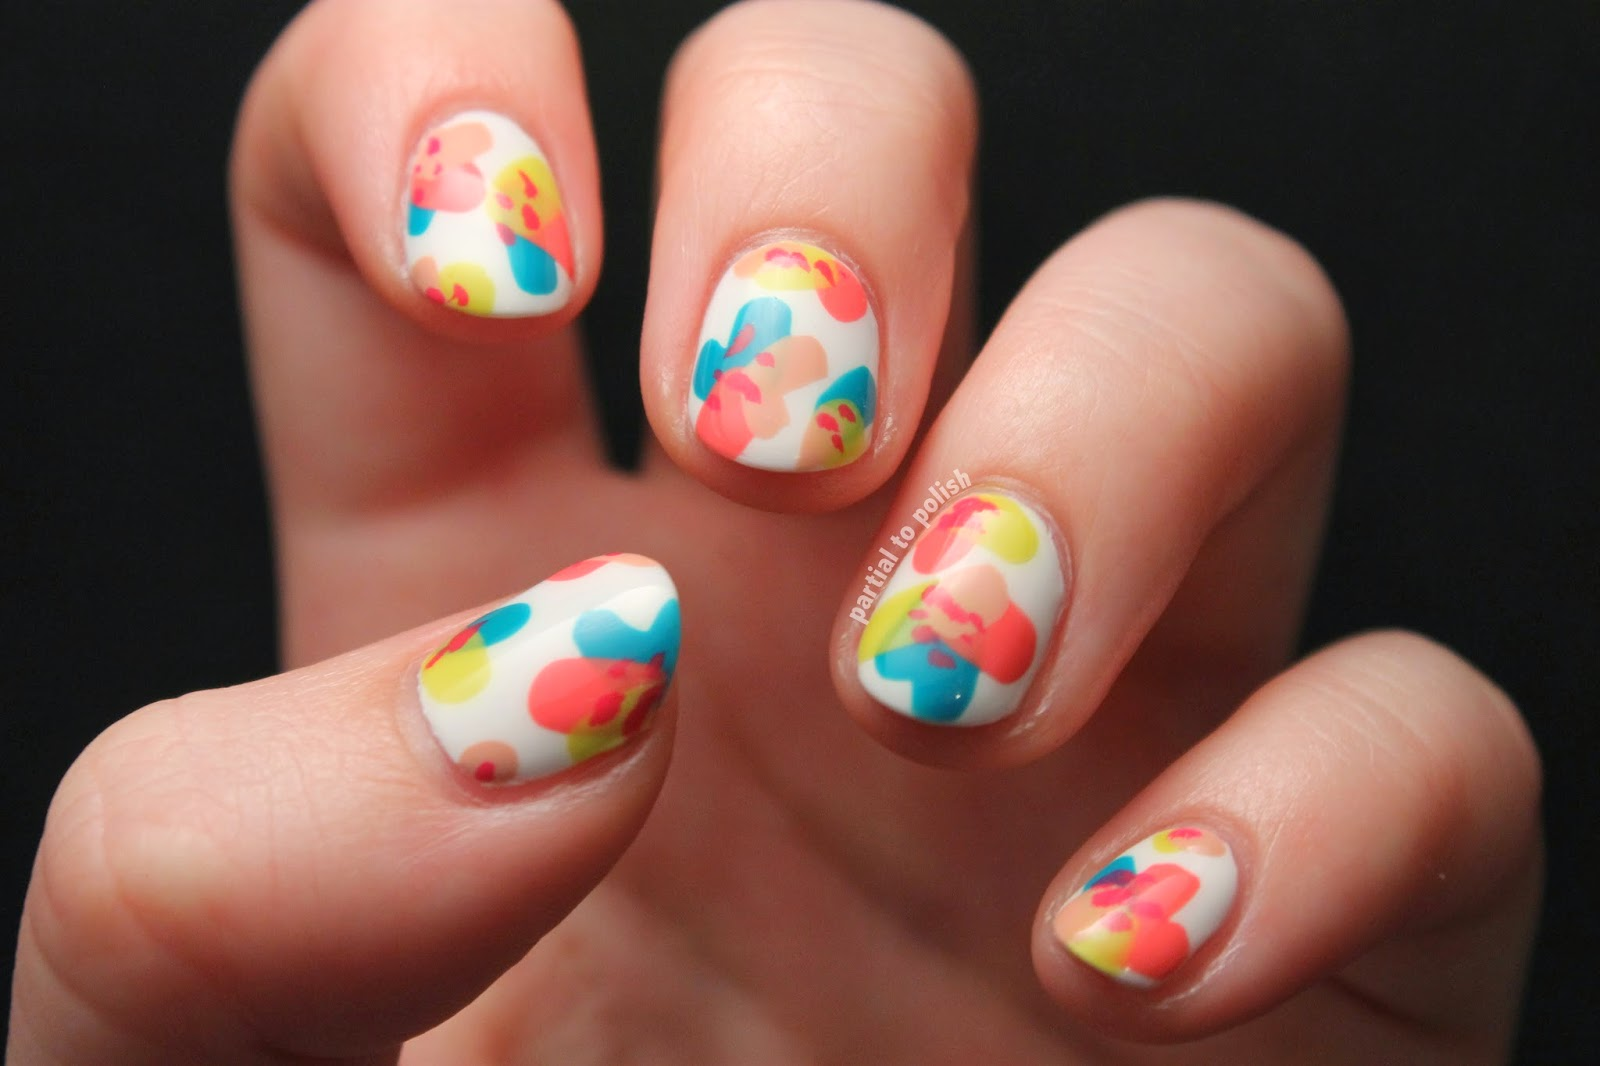 MrCandiipants Spring Floral Nail Art